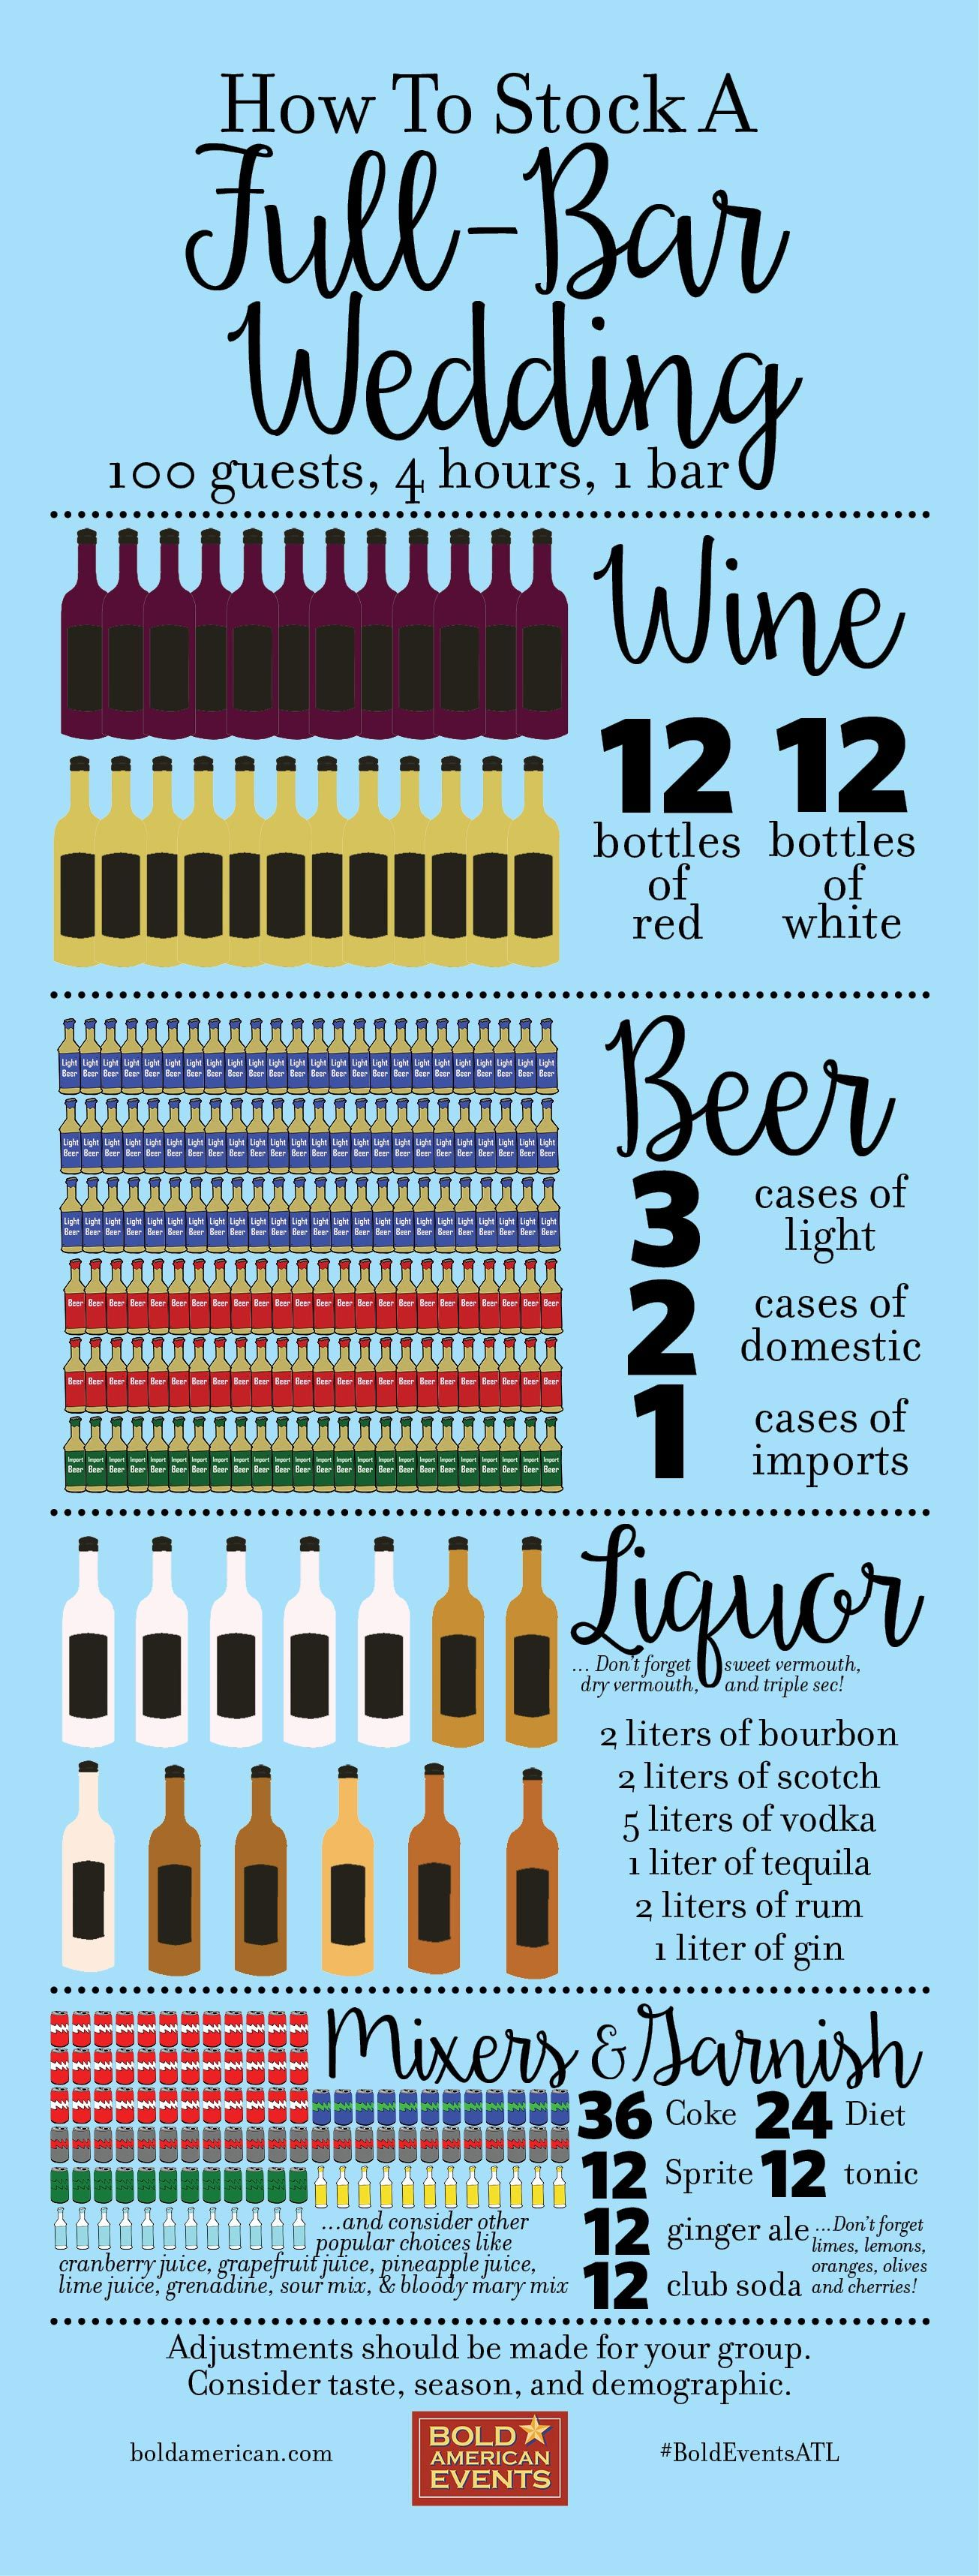 Beer wine liquor and more hereus a great starter kit for how to